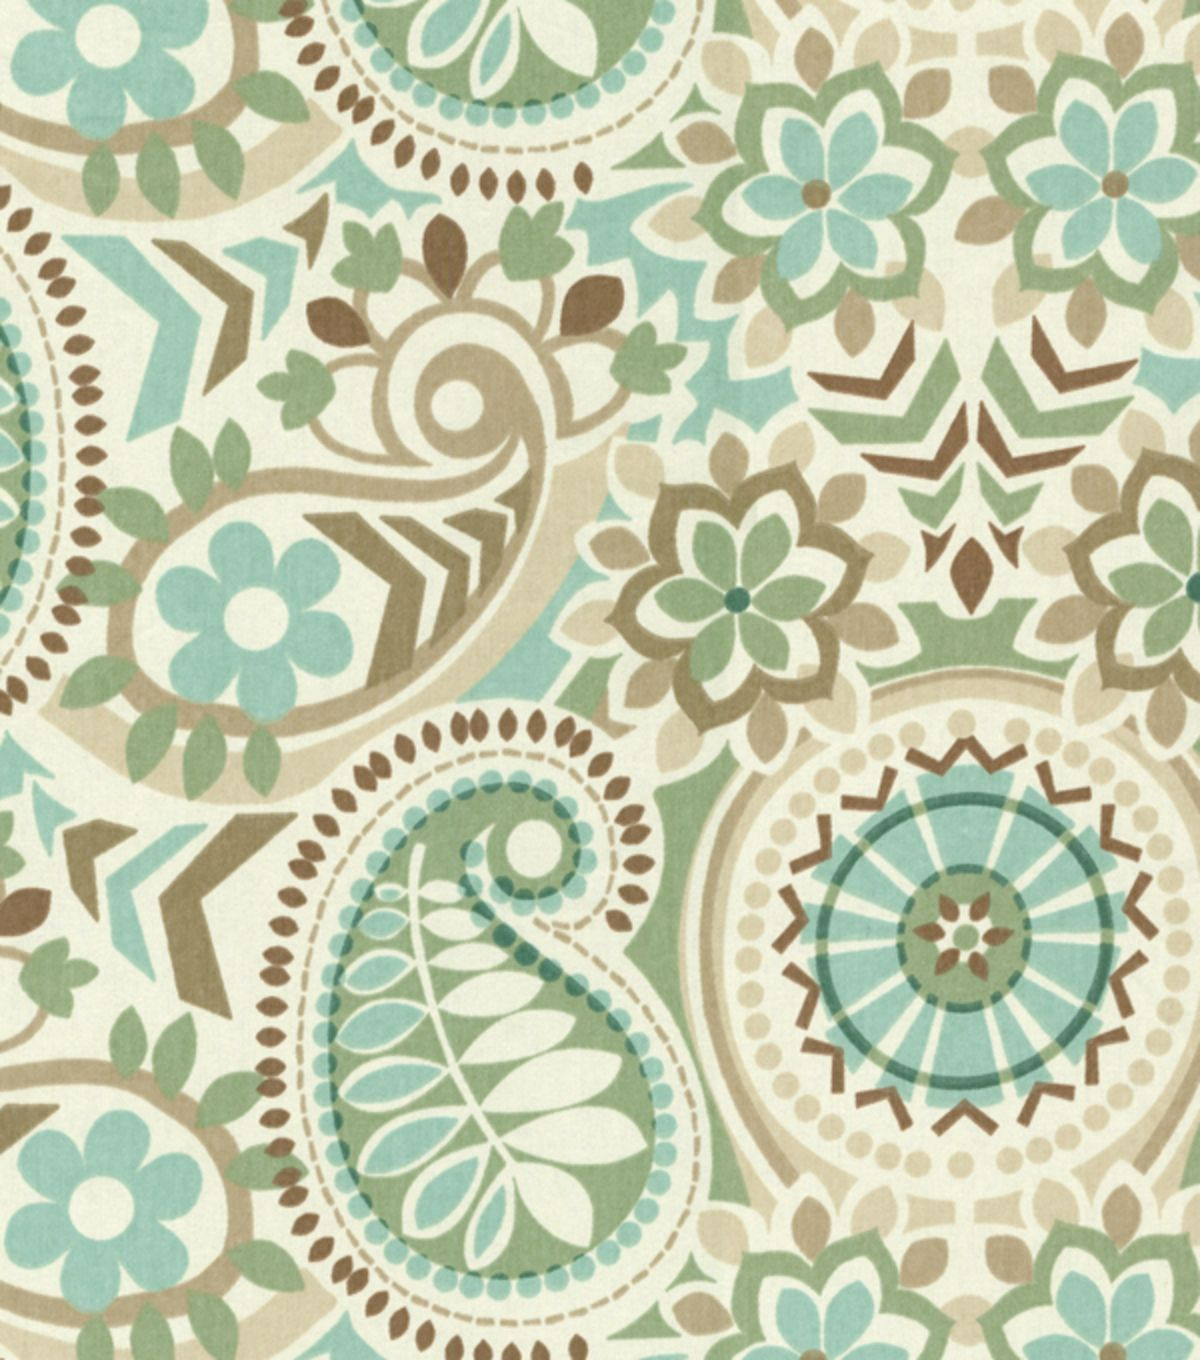 A Traditional Paisley Home D Cor Fabric With Elegant Color Combination Perfect For Mix And Match